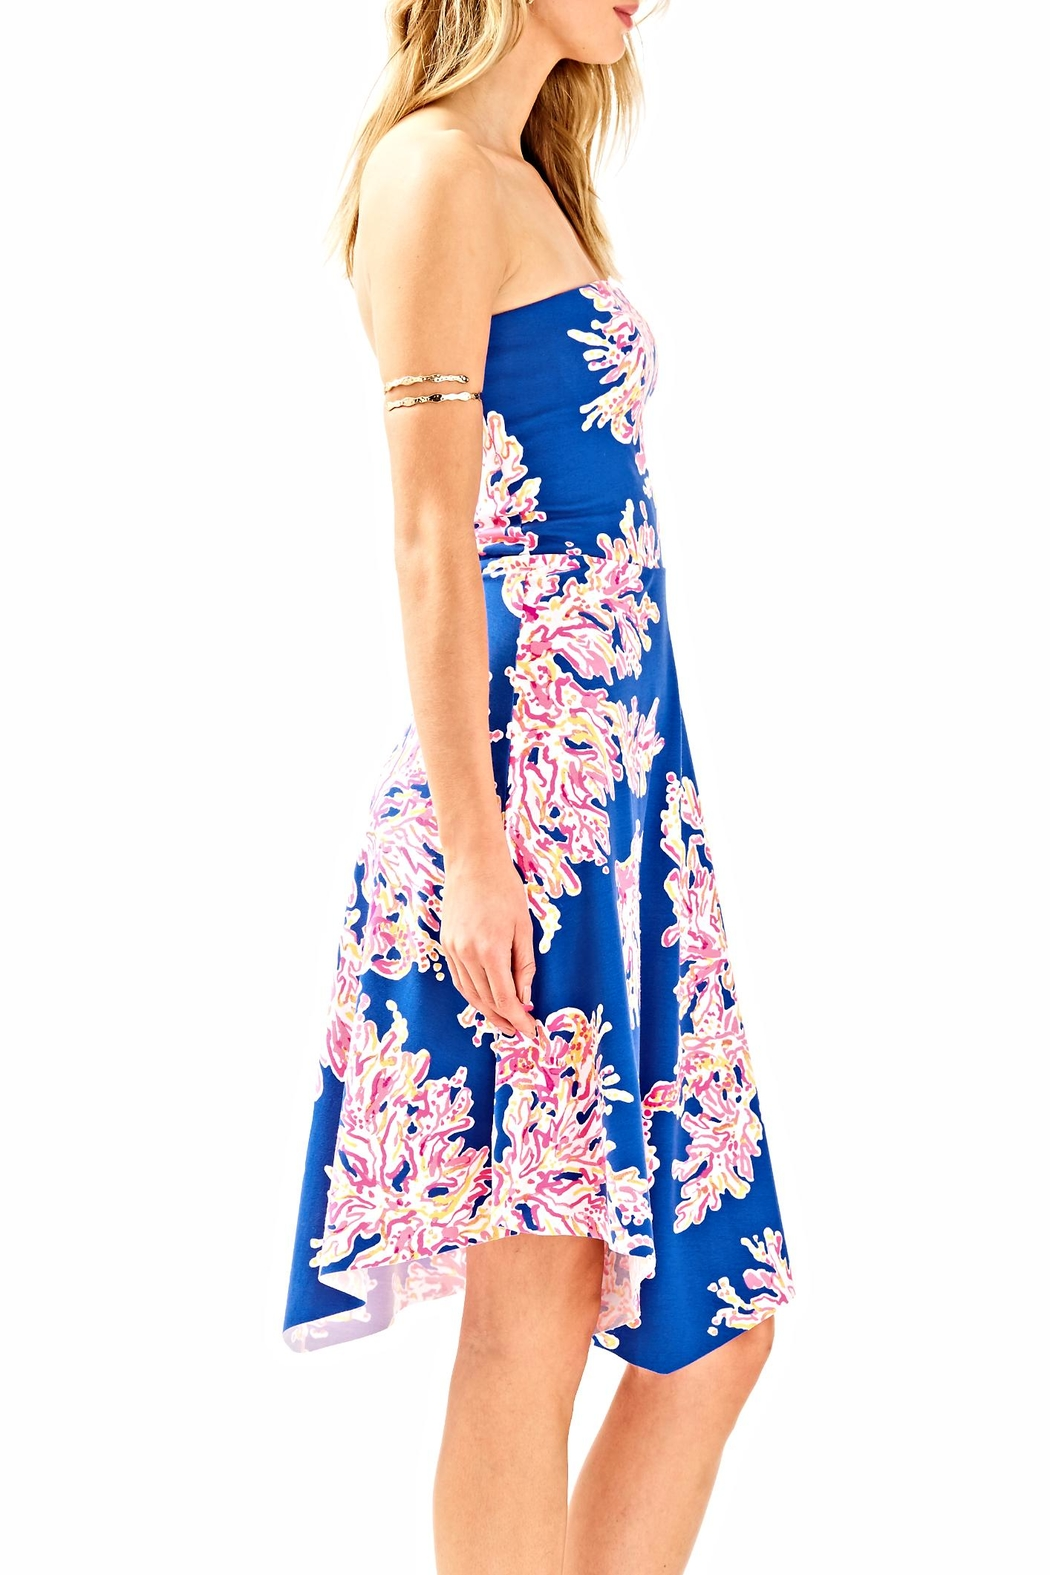 Lilly Pulitzer Loleta Strapless Dress - Front Full Image